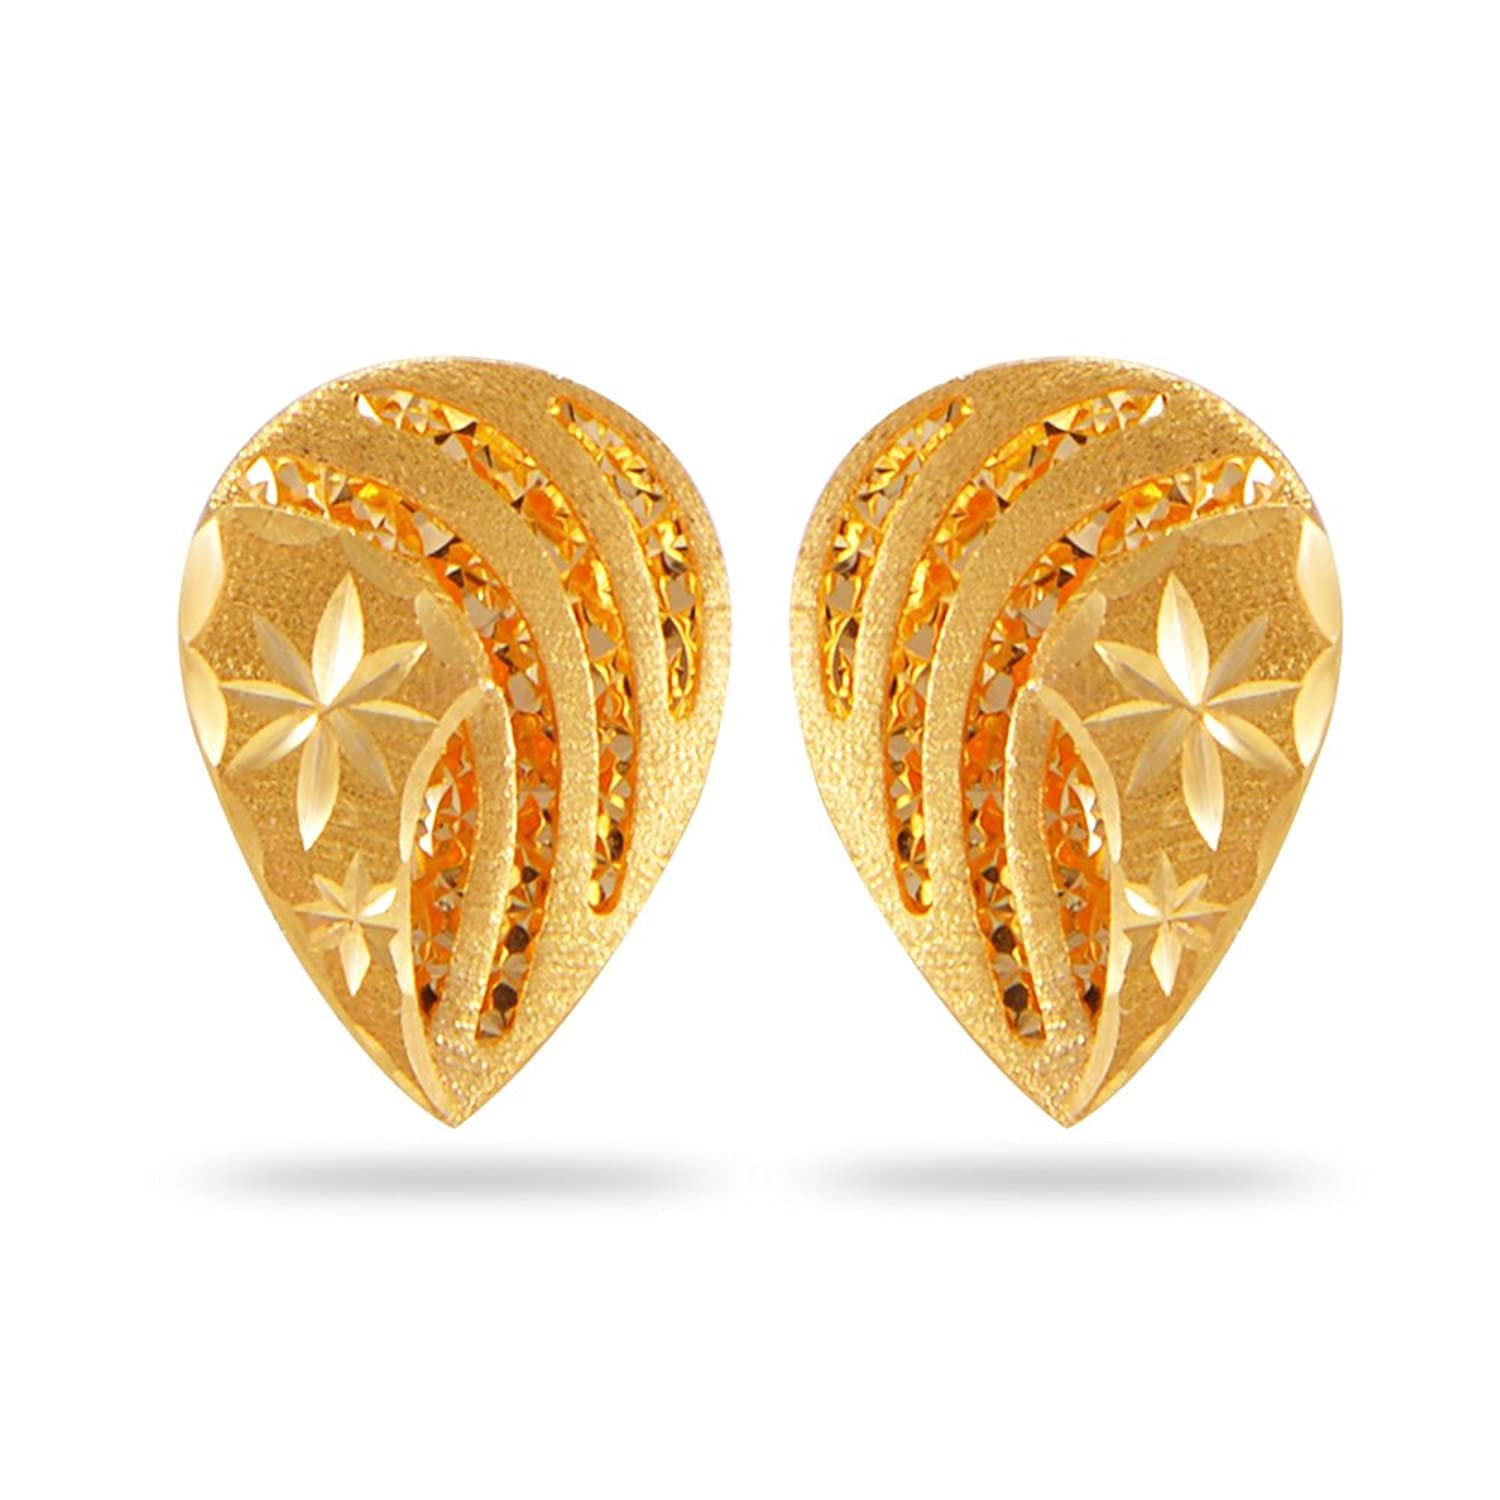 florenza india product shopping jewelone heart store gold the yellow online earrings stud jewellery